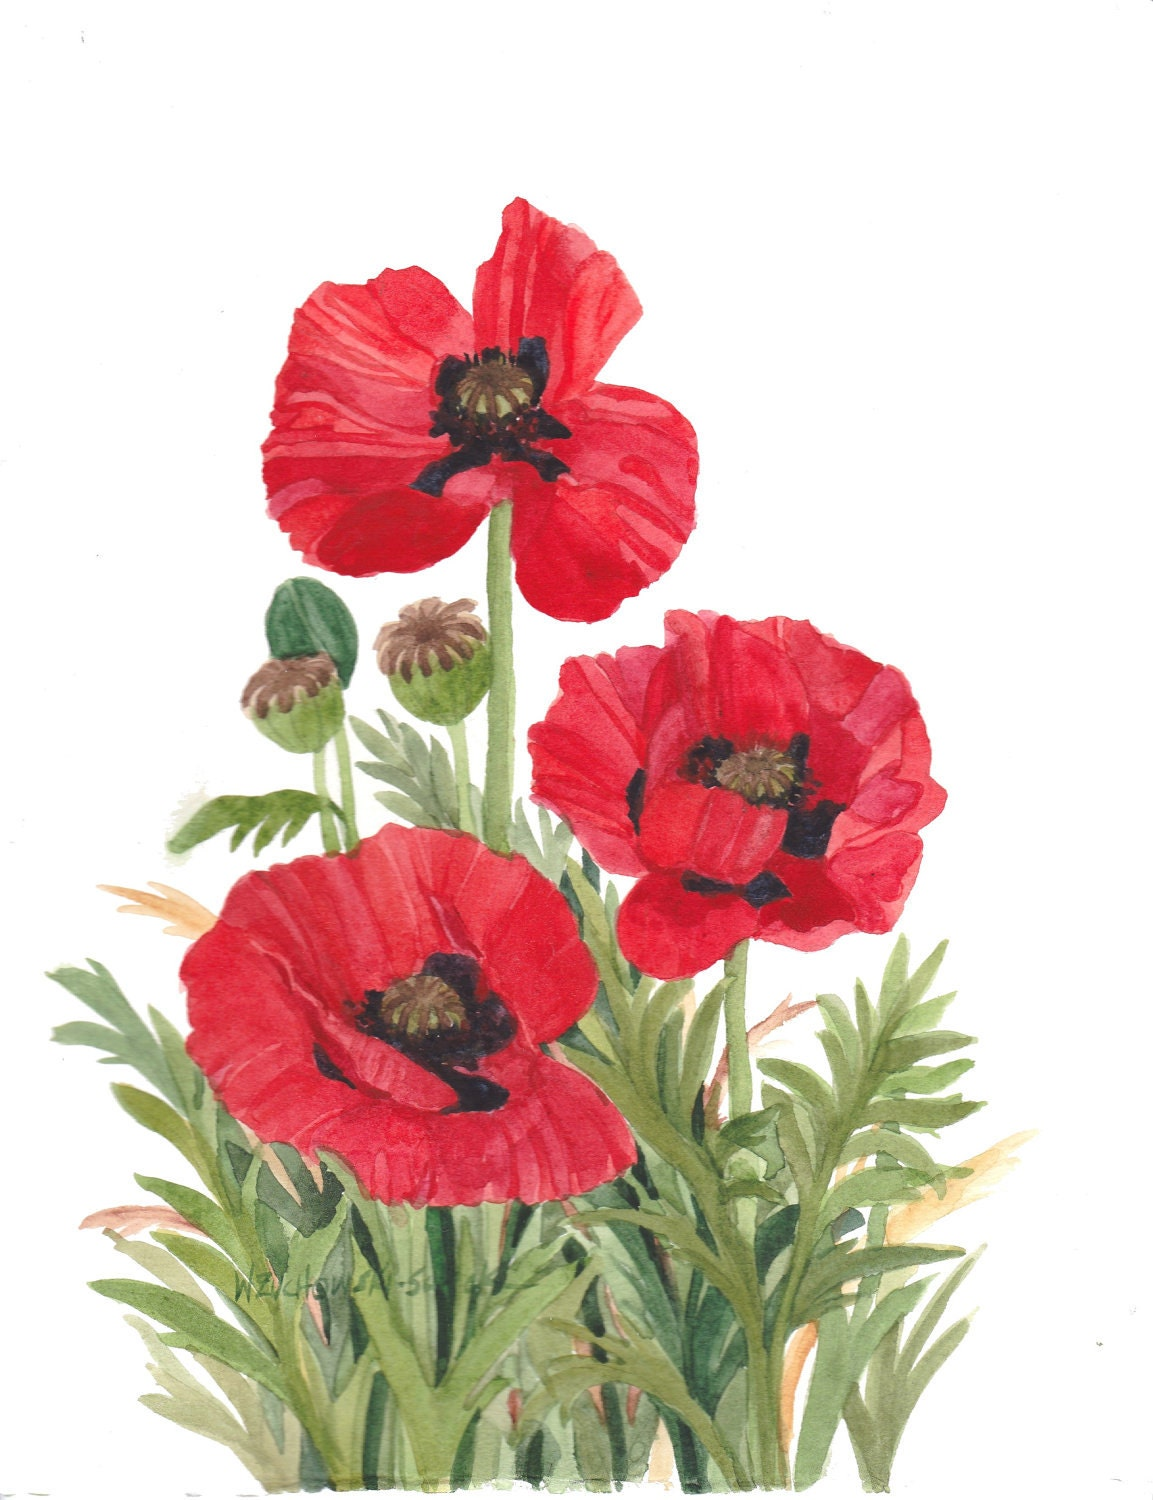 Red Poppy Original Watercolor Painting Flower painting Red |Watercolor Poppies Pink